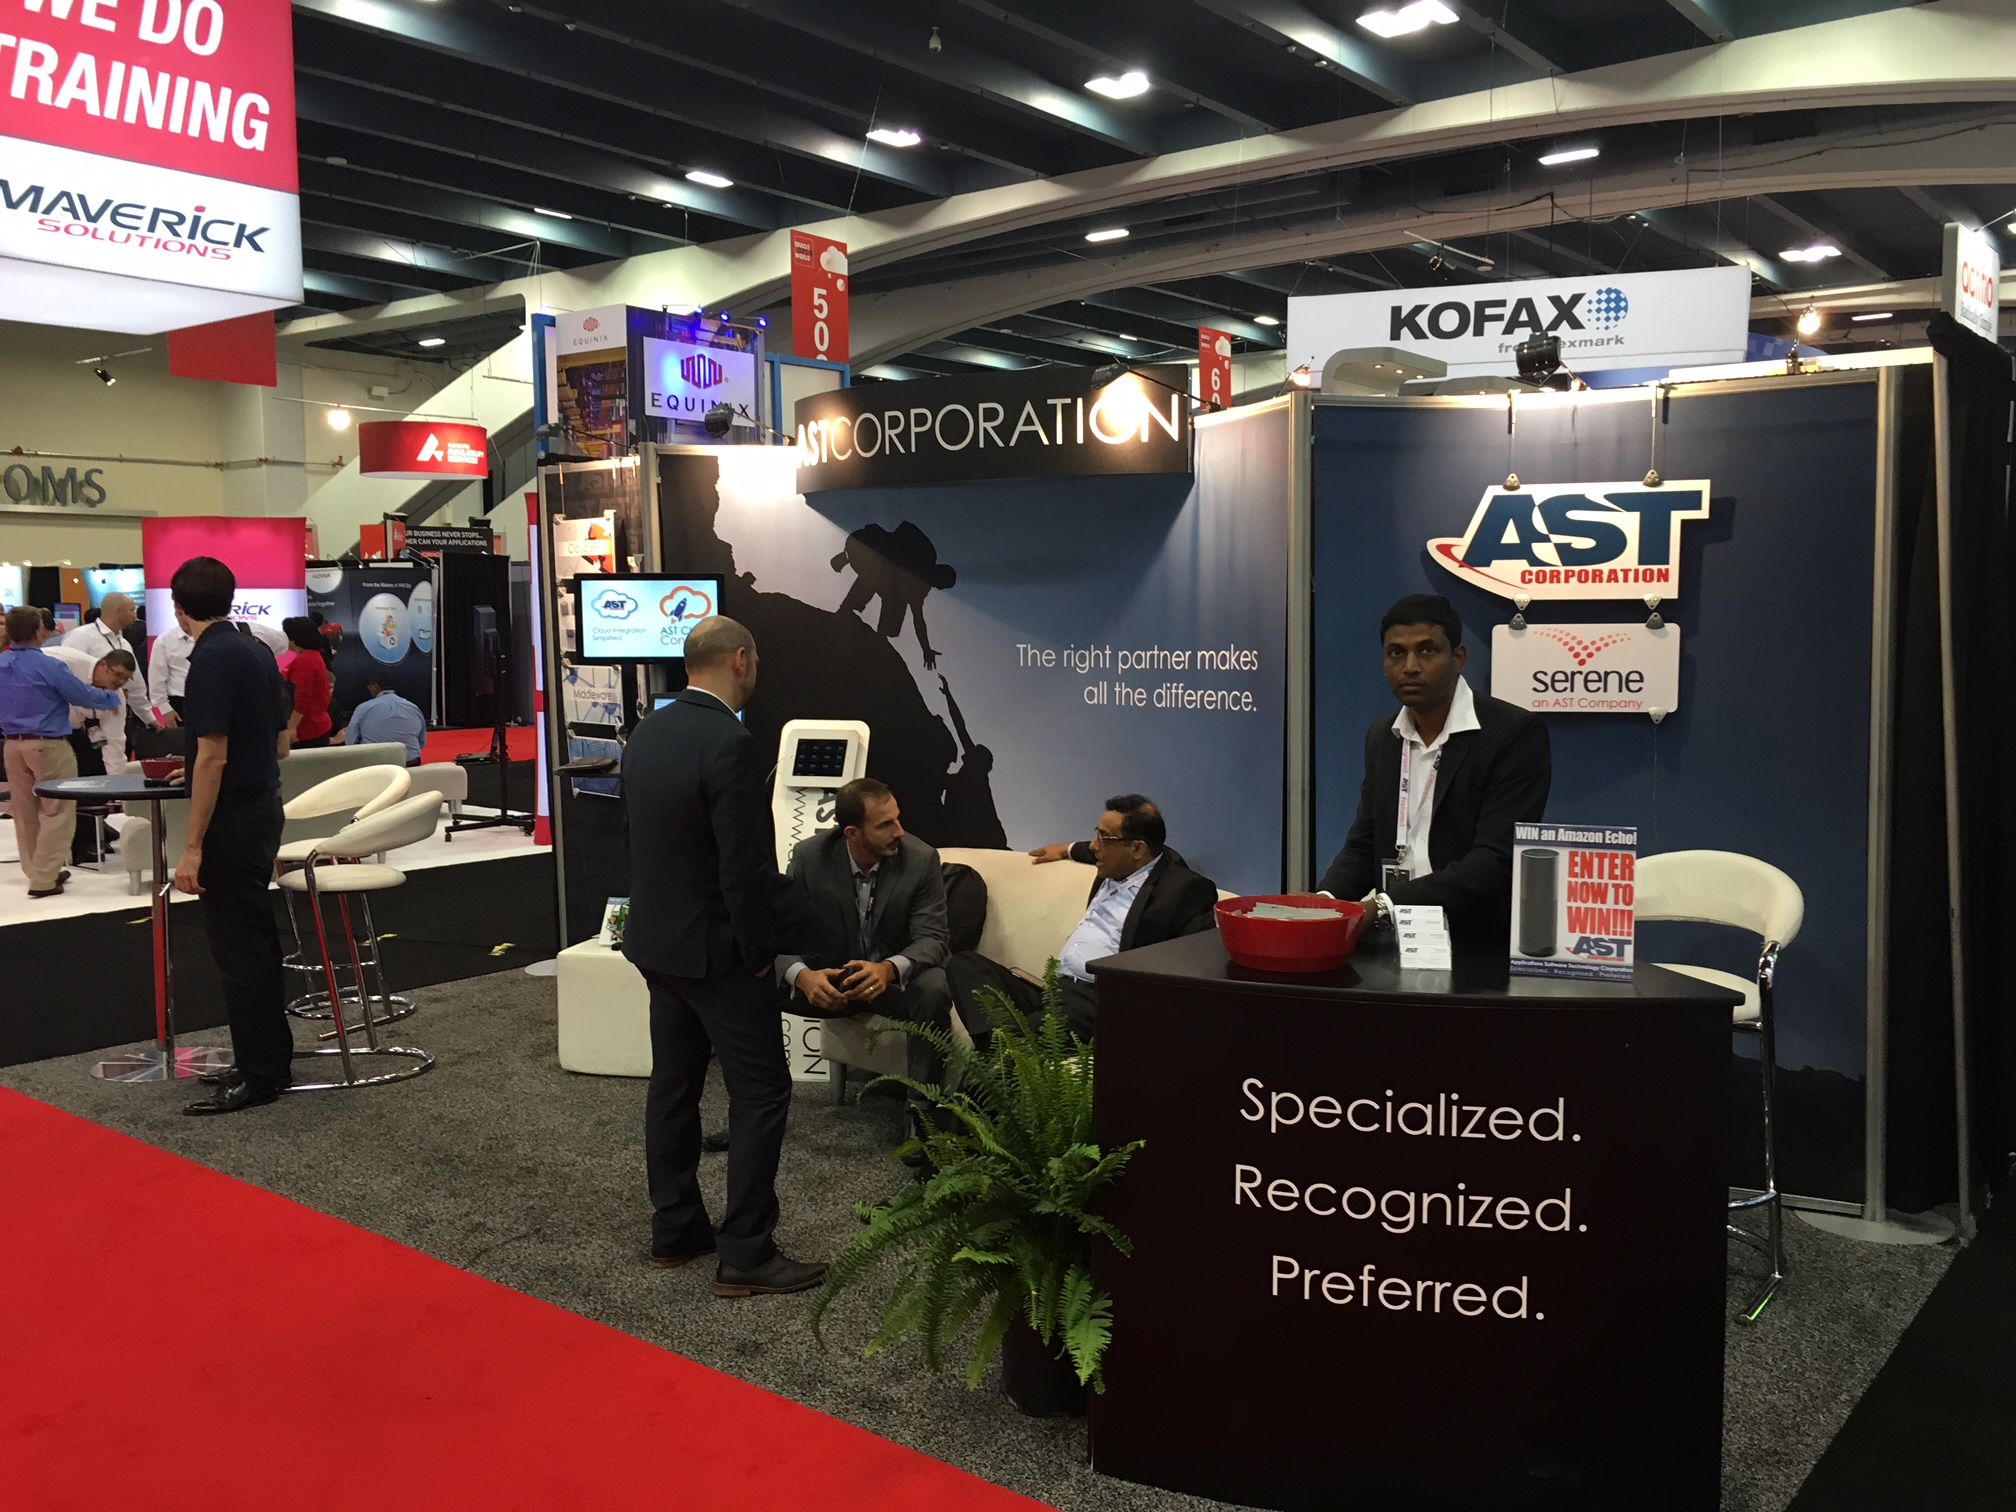 Visit Team AST at OOW Booth 309 and Win Big!